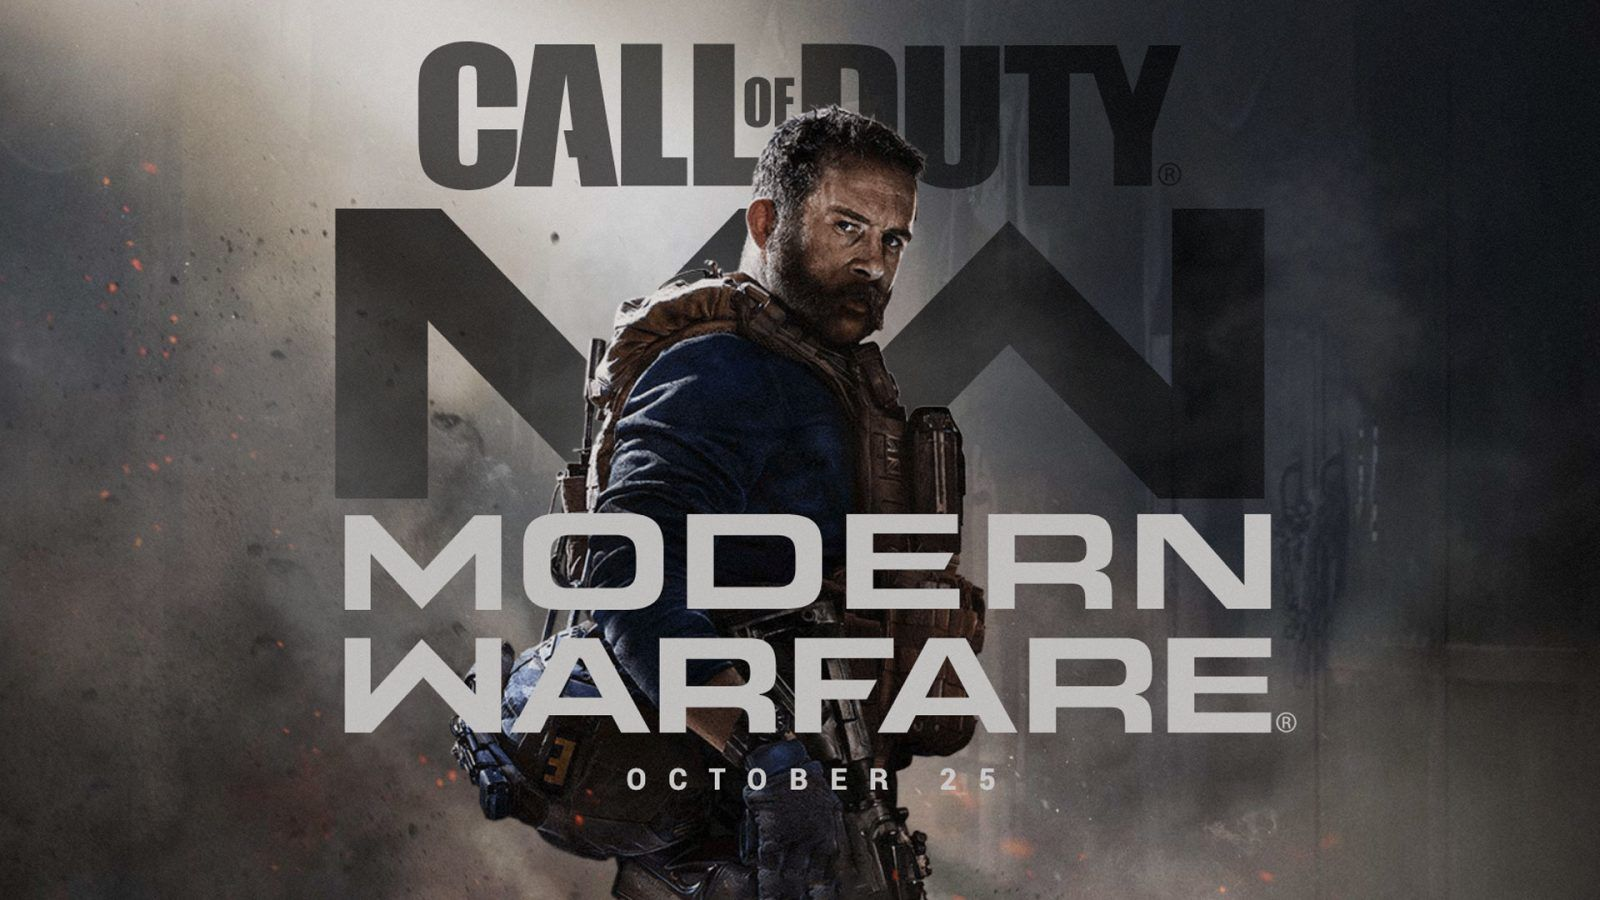 Call Of Duty Modern Warfare Pc System Requirements Were Revealed By Activision Blizzard The Game Is Out On October 25 For Call Of Duty Modern Warfare Warfare